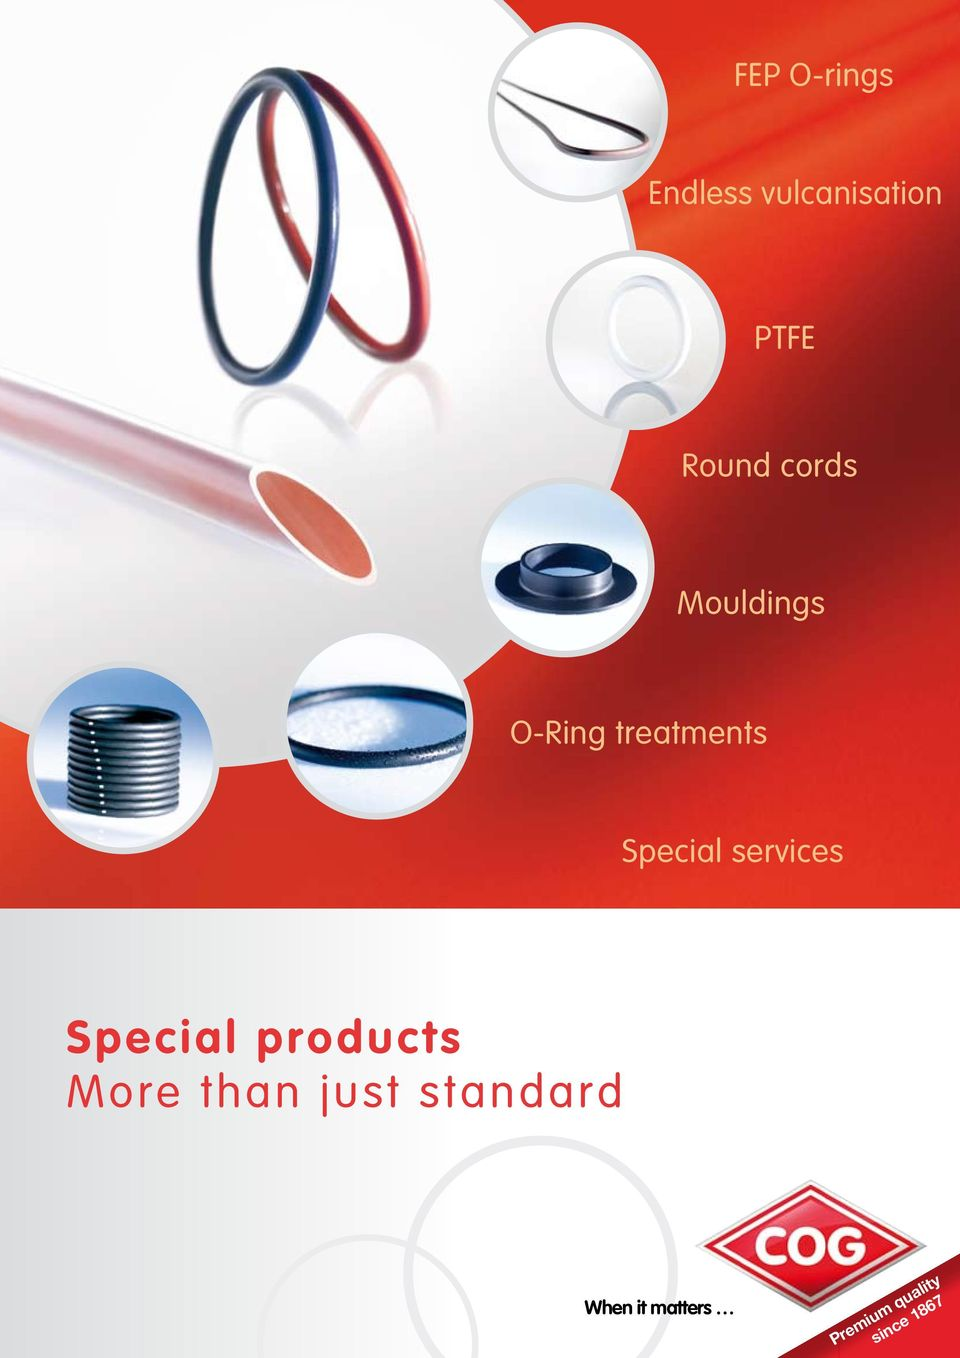 services Special products More than just